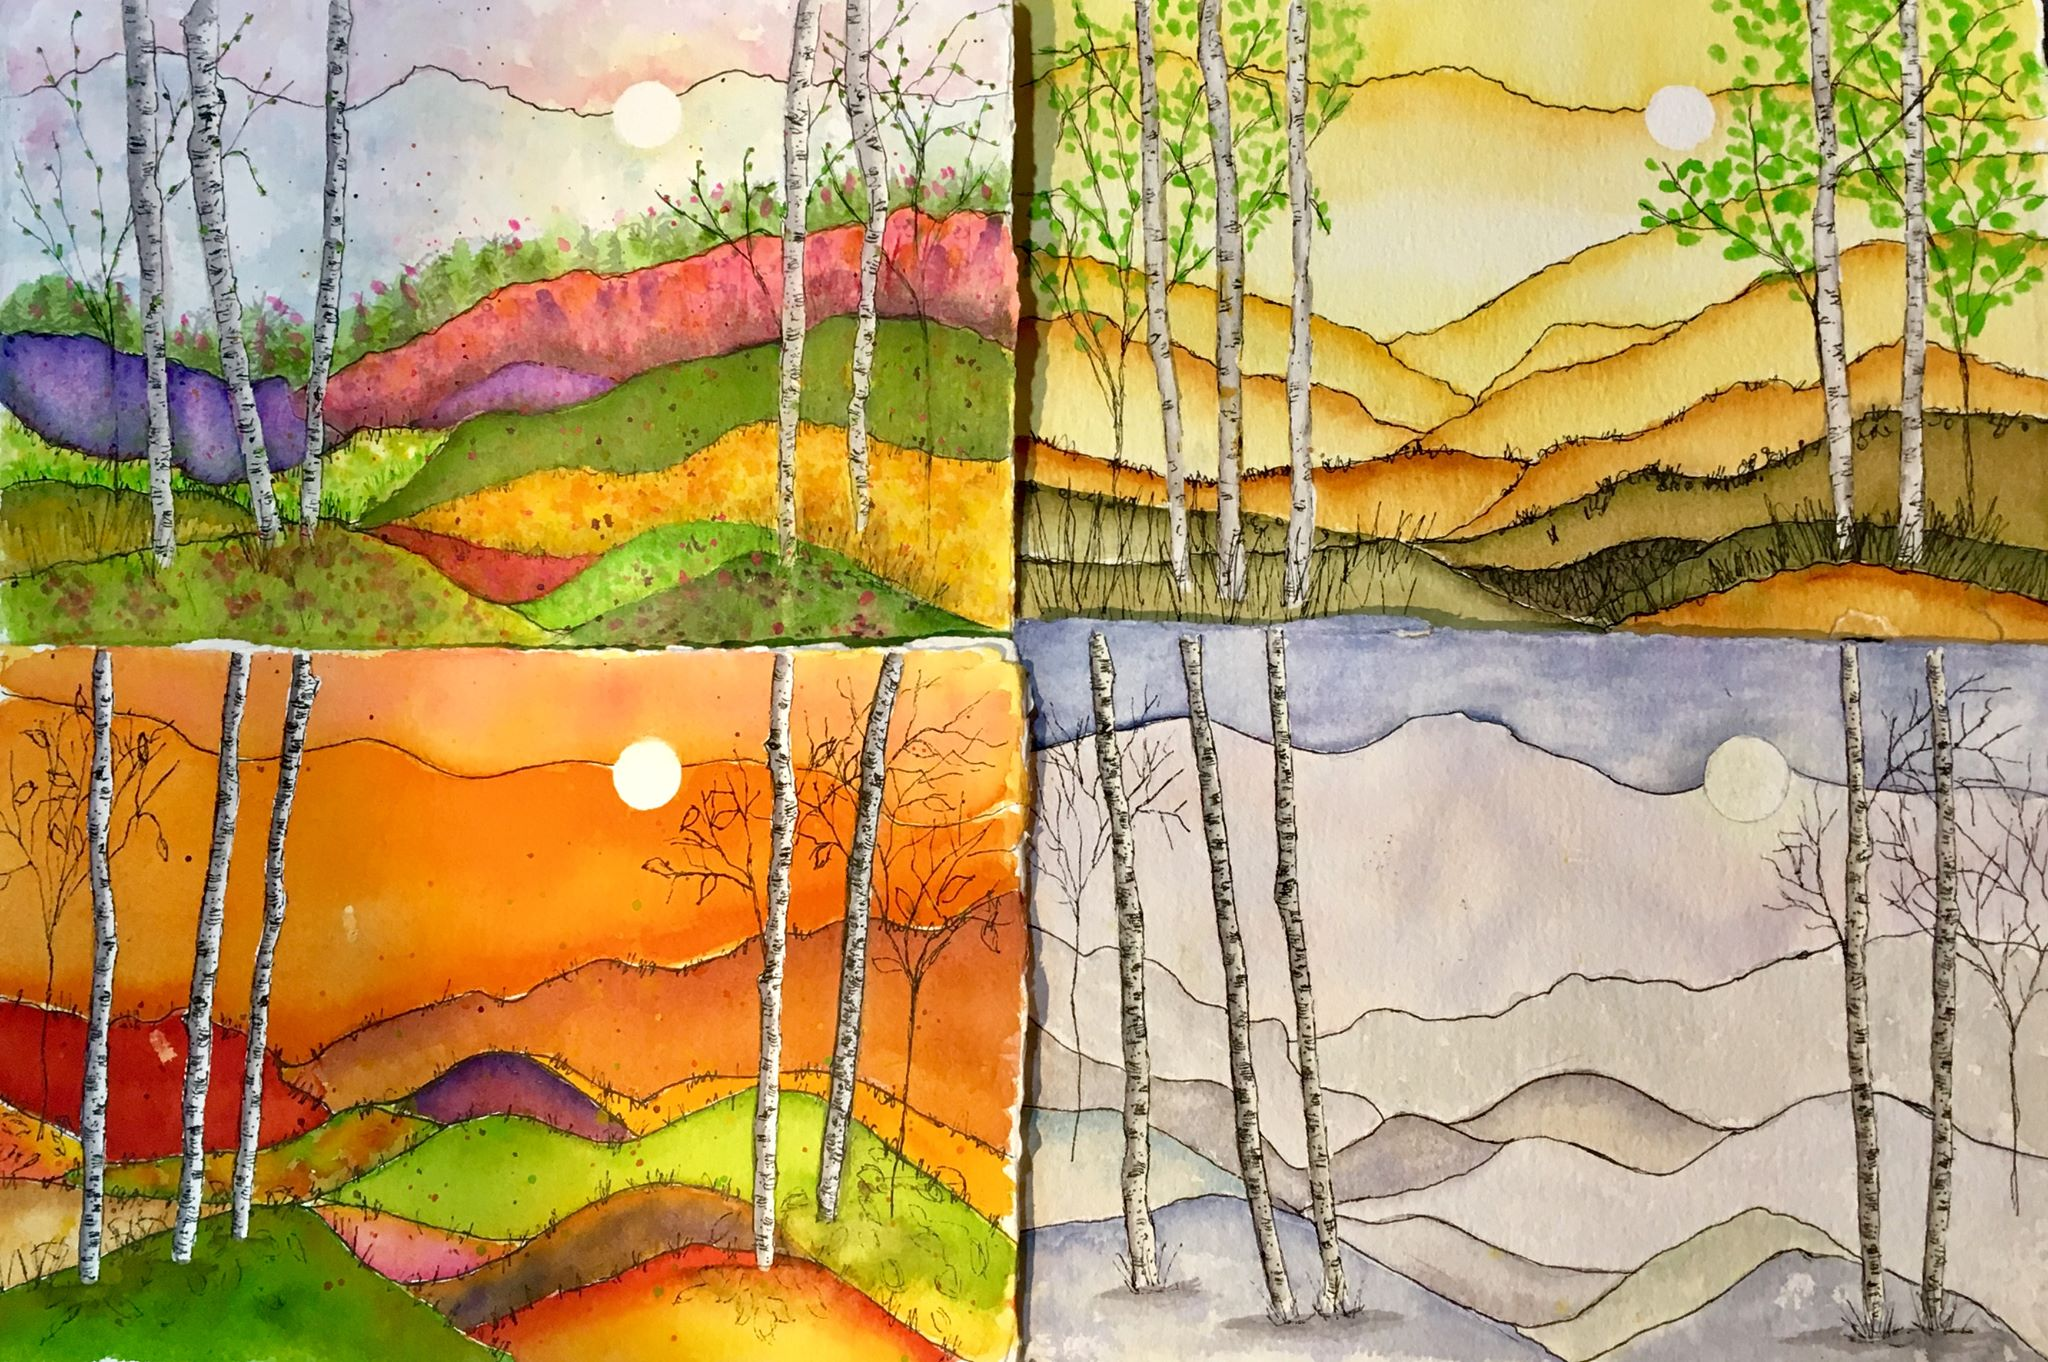 Four seasons - watercolor